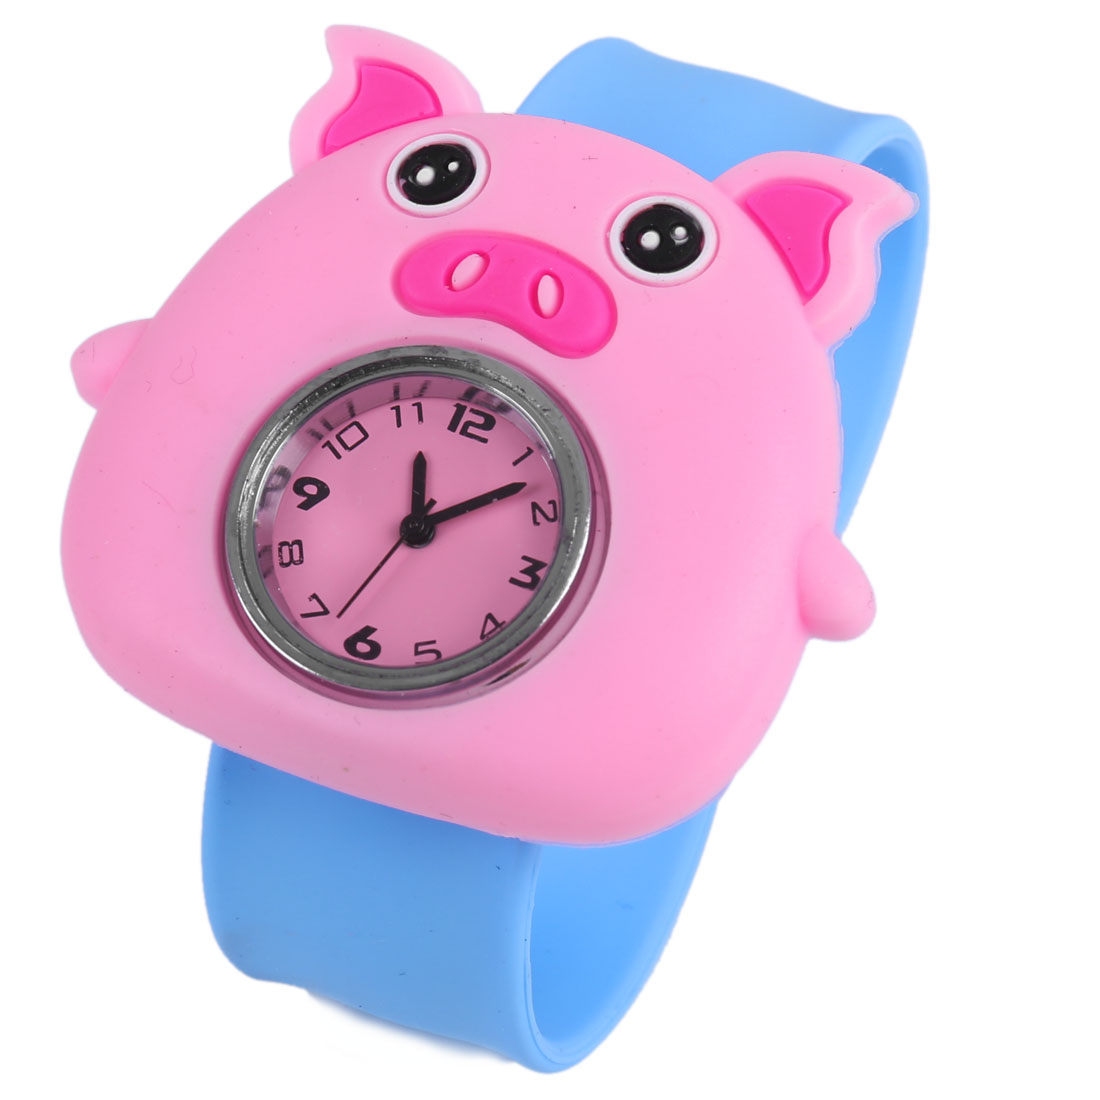 Fashion NEWS Kids Slap Cuff Animated Pig Wrist Watch Pink Blue